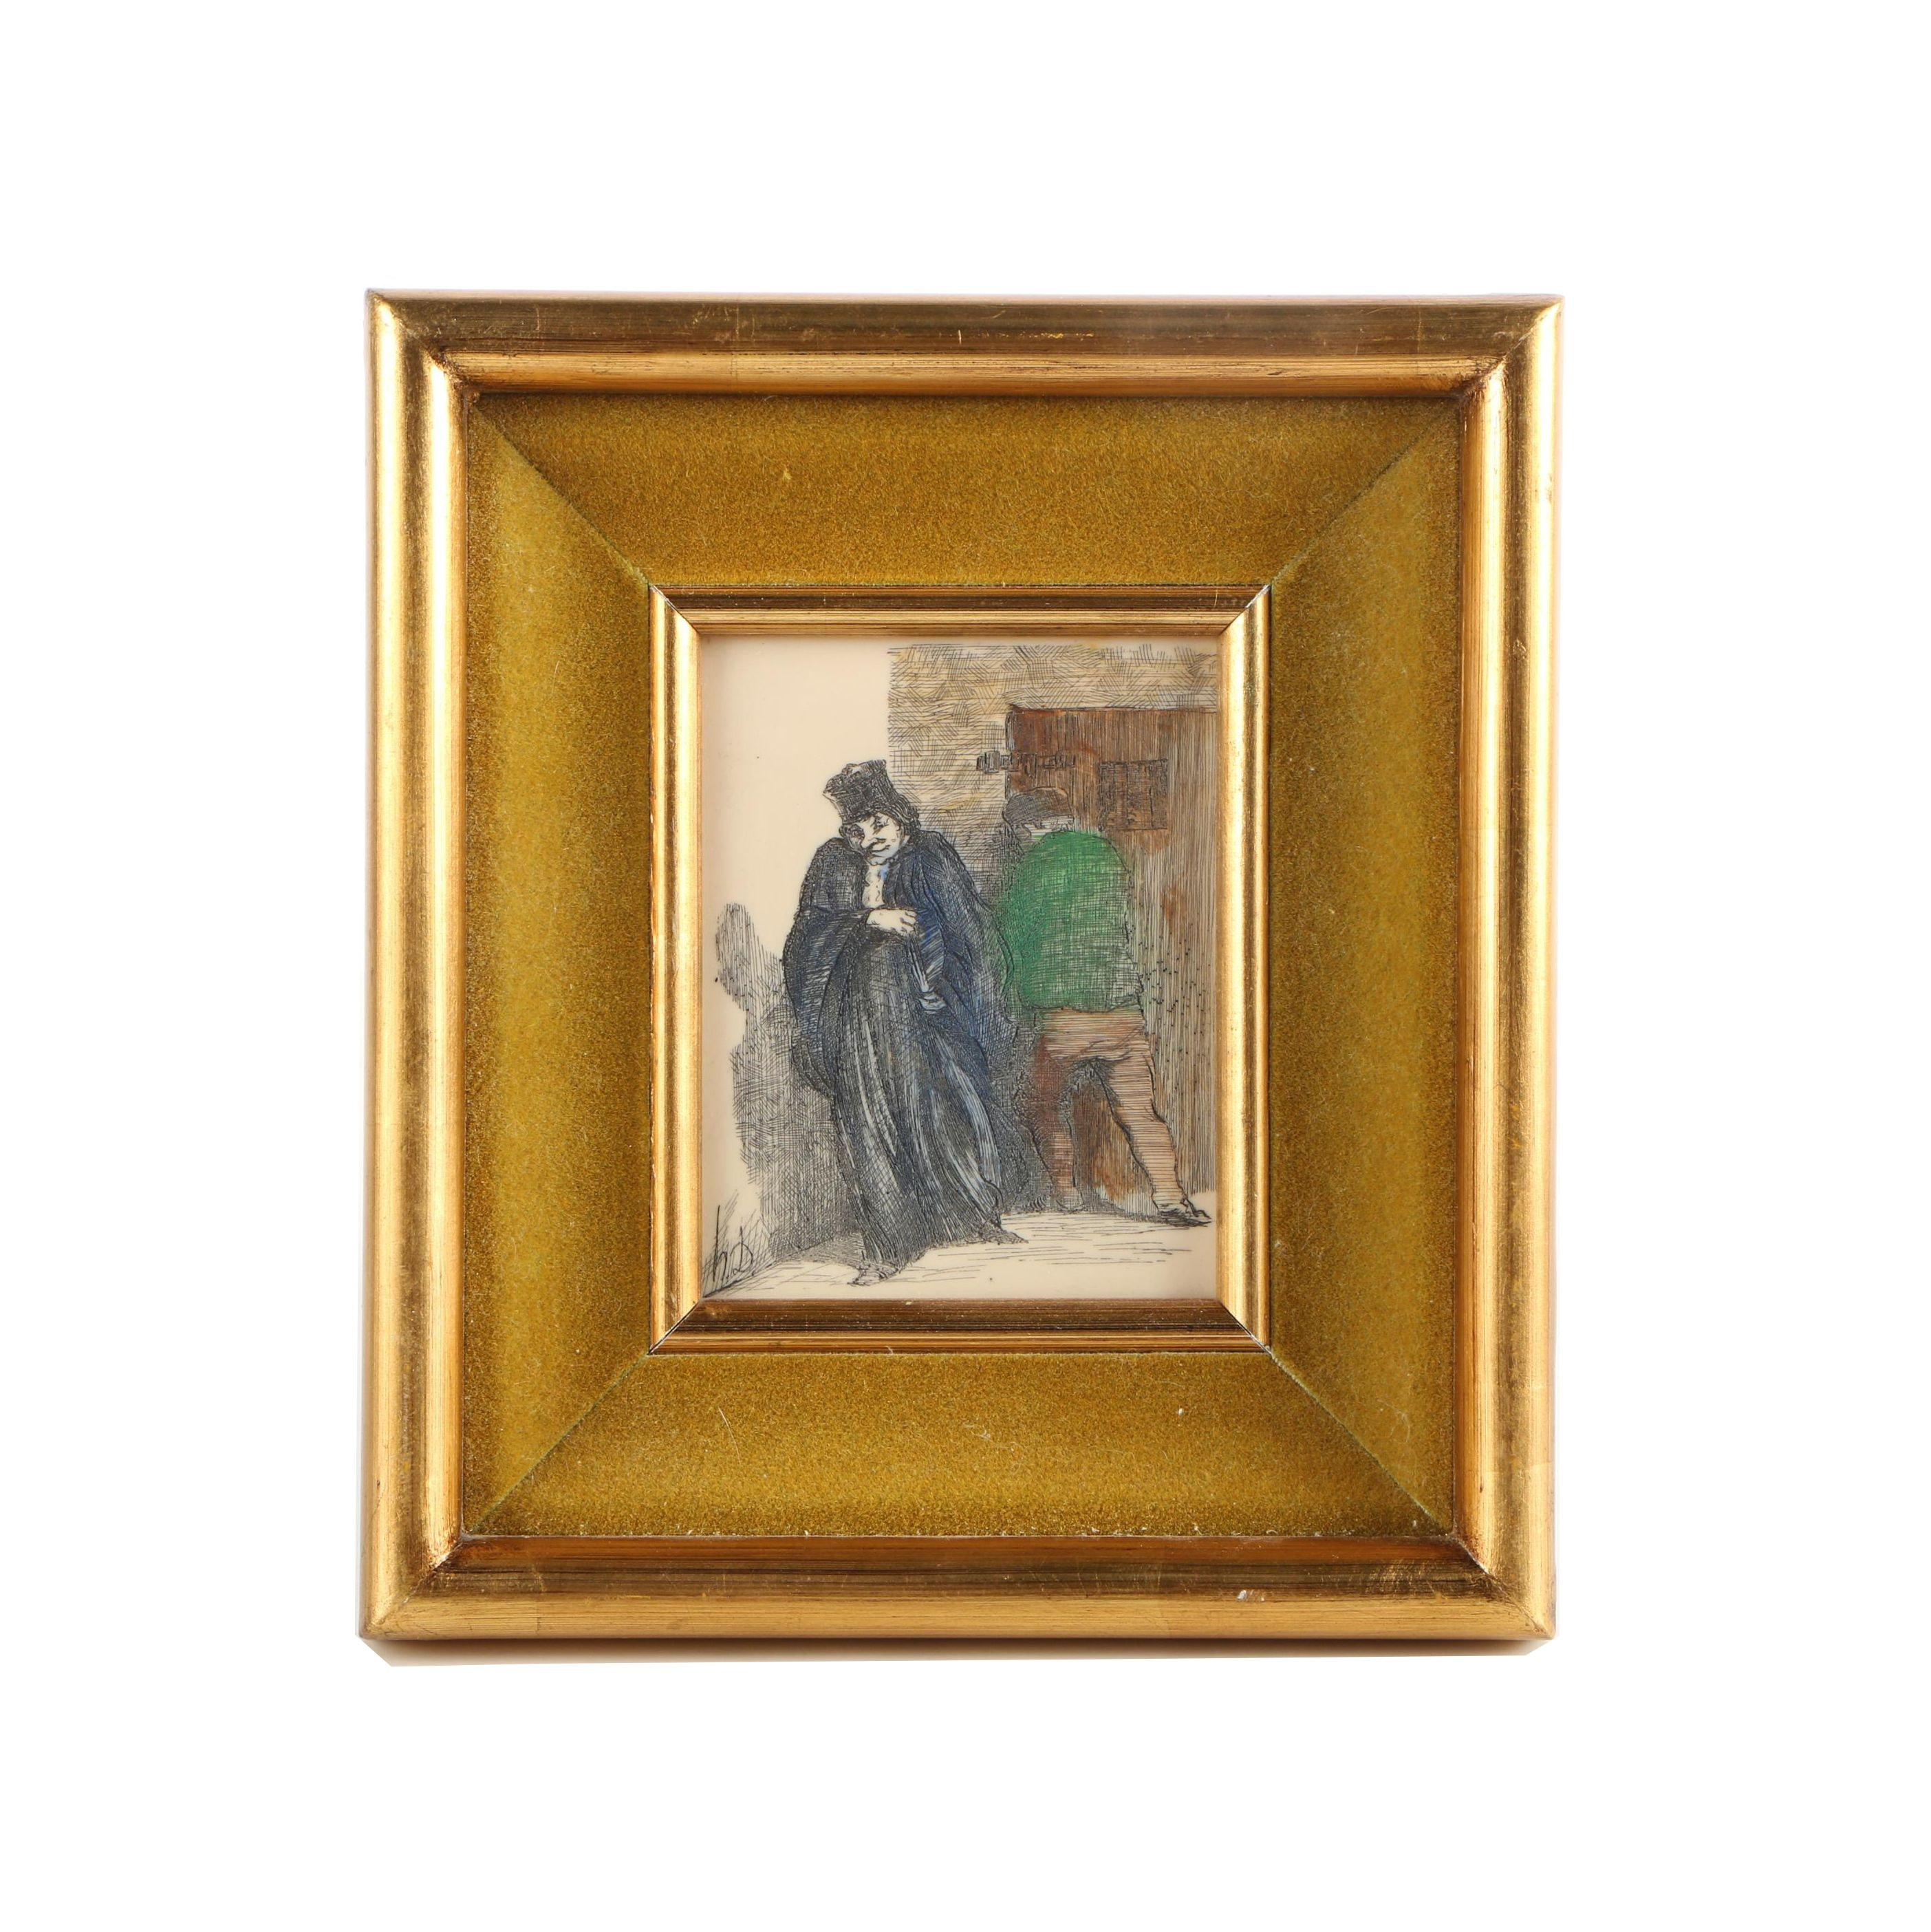 H.D. Resin Engraving of Figures